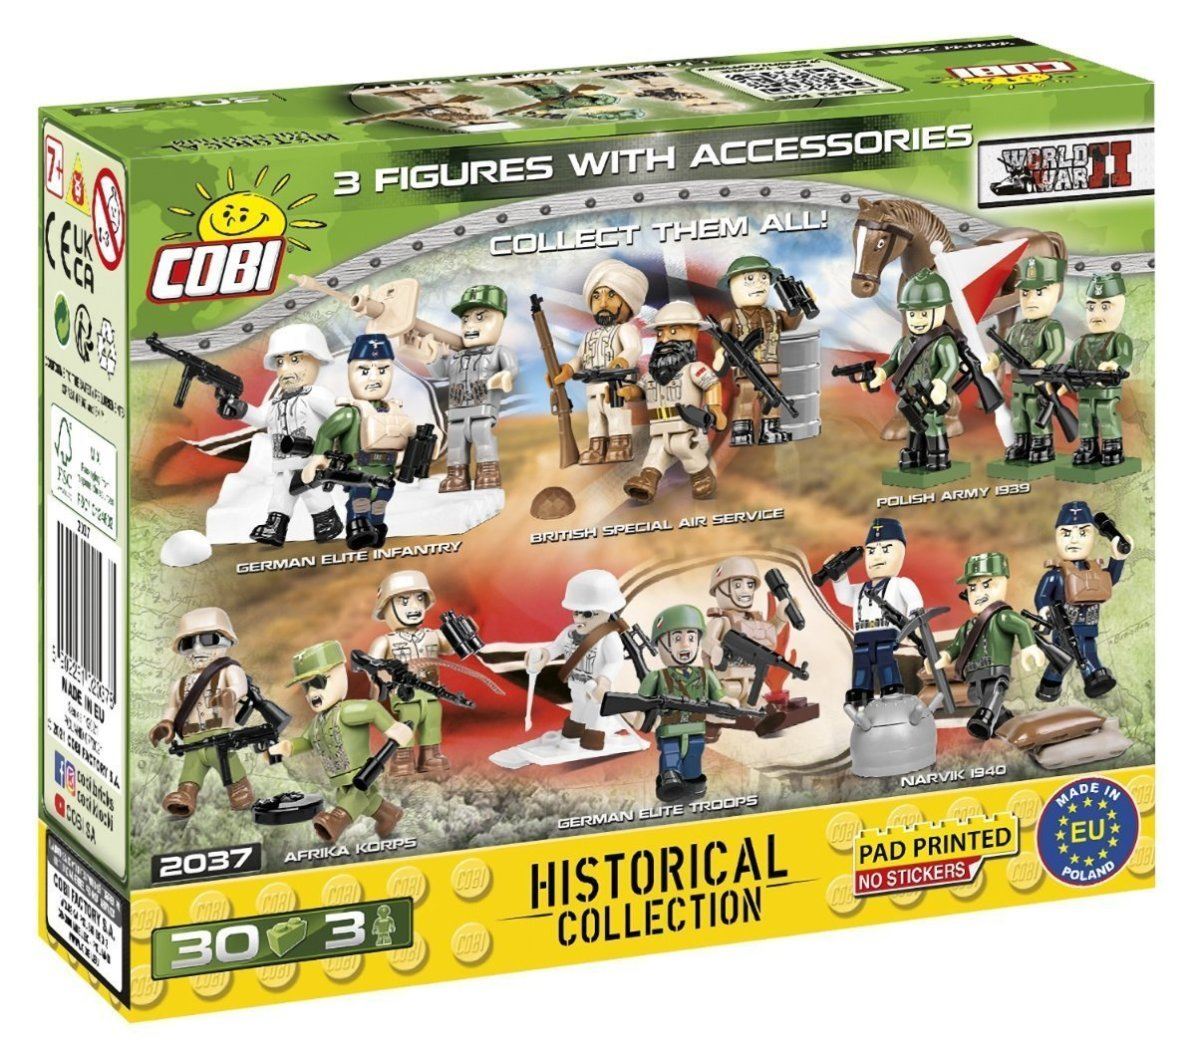 COBI French Armed Forces Figure Set (2037) Amazon